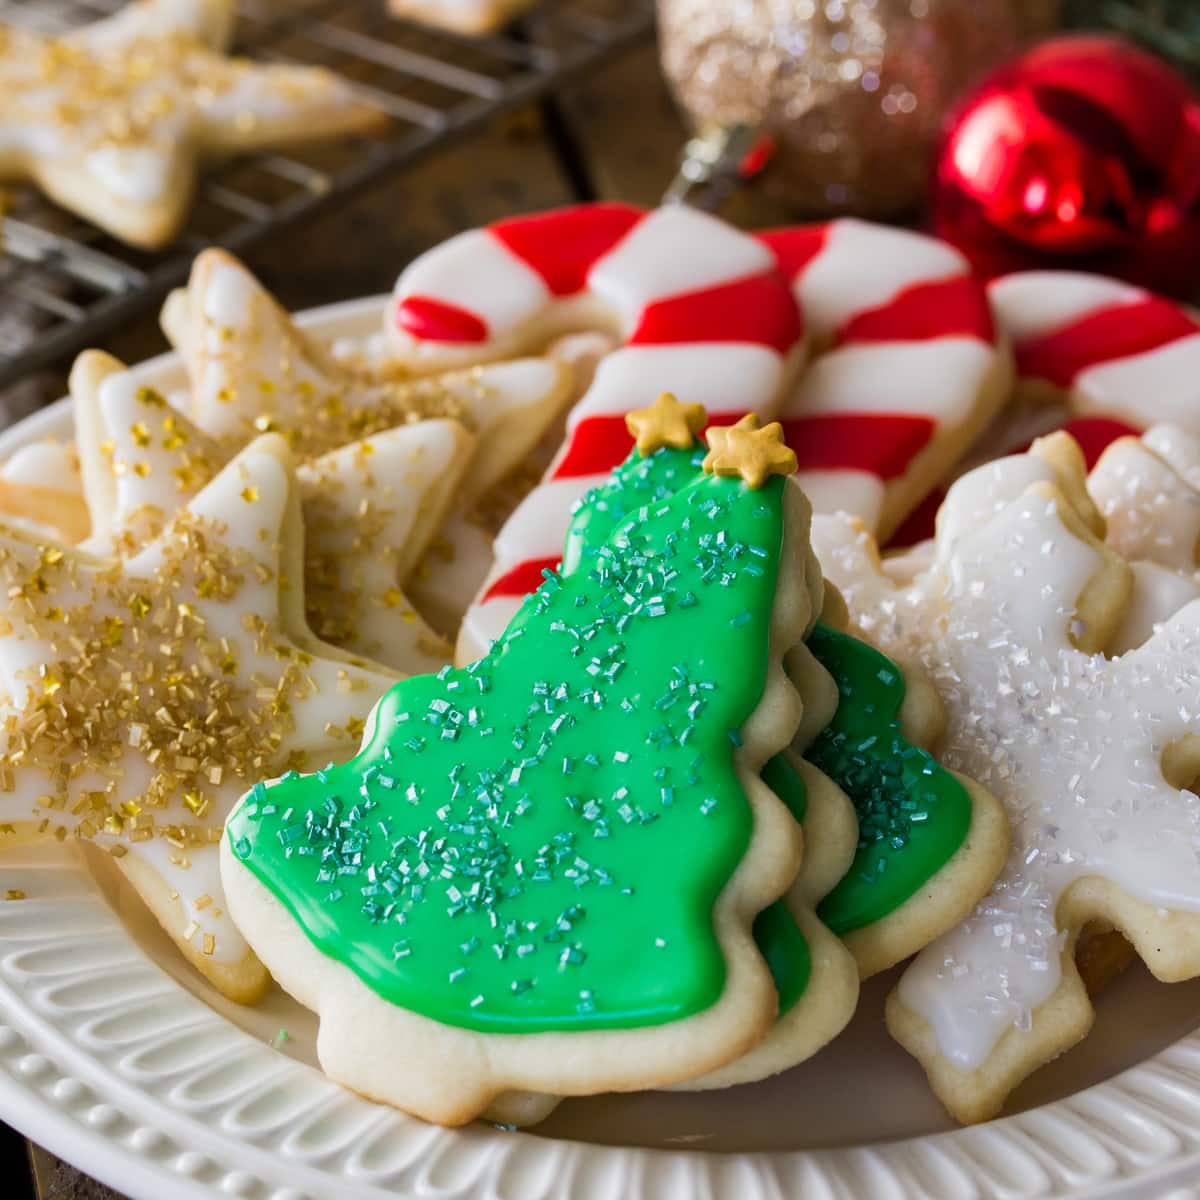 Soft Sugar Cookie Recipes Christmas: Easy Sugar Cookie Recipe (With Icing!)